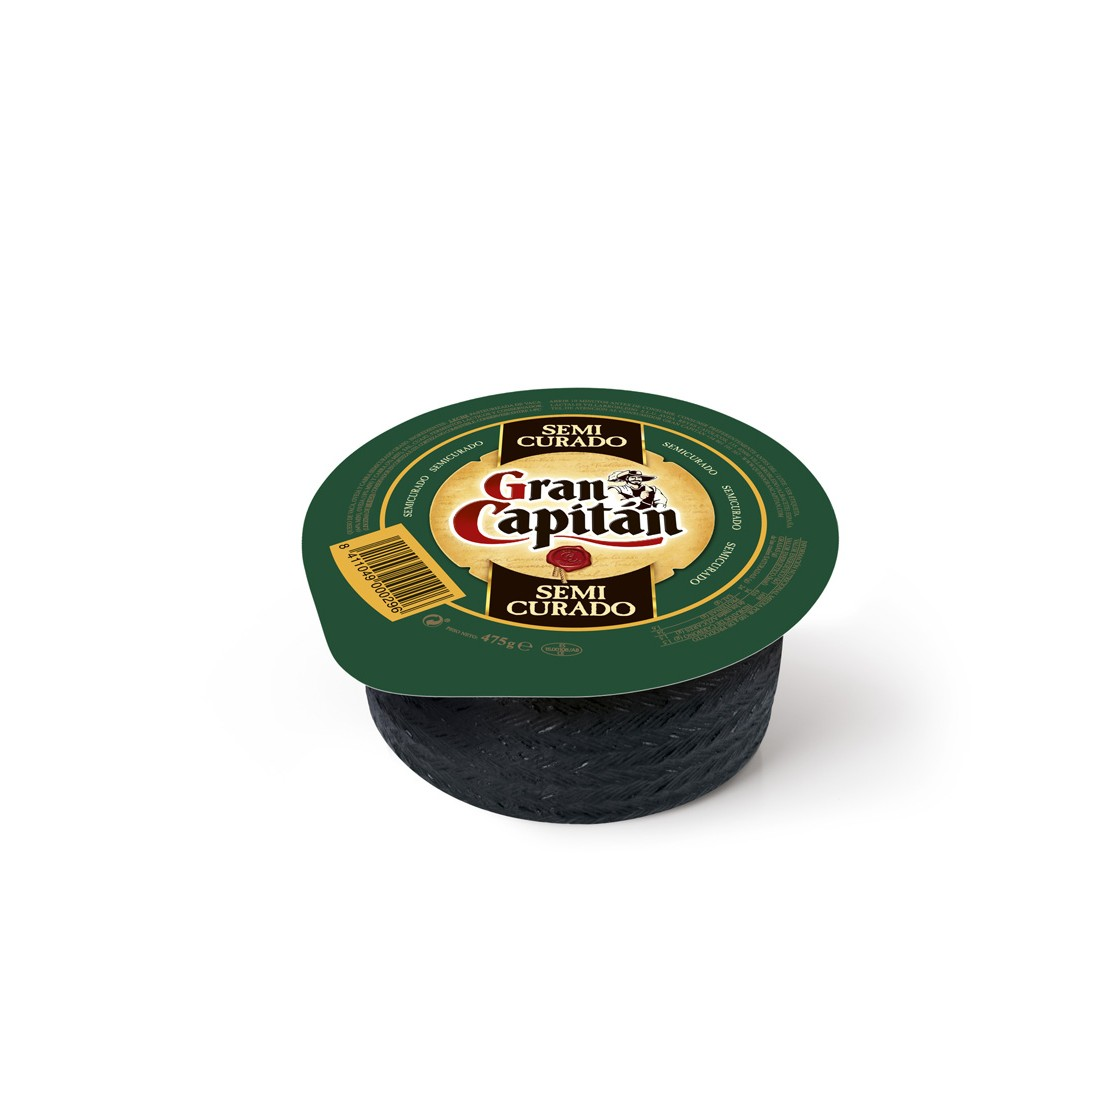 Gran Capitán queso semicurado de 475g.